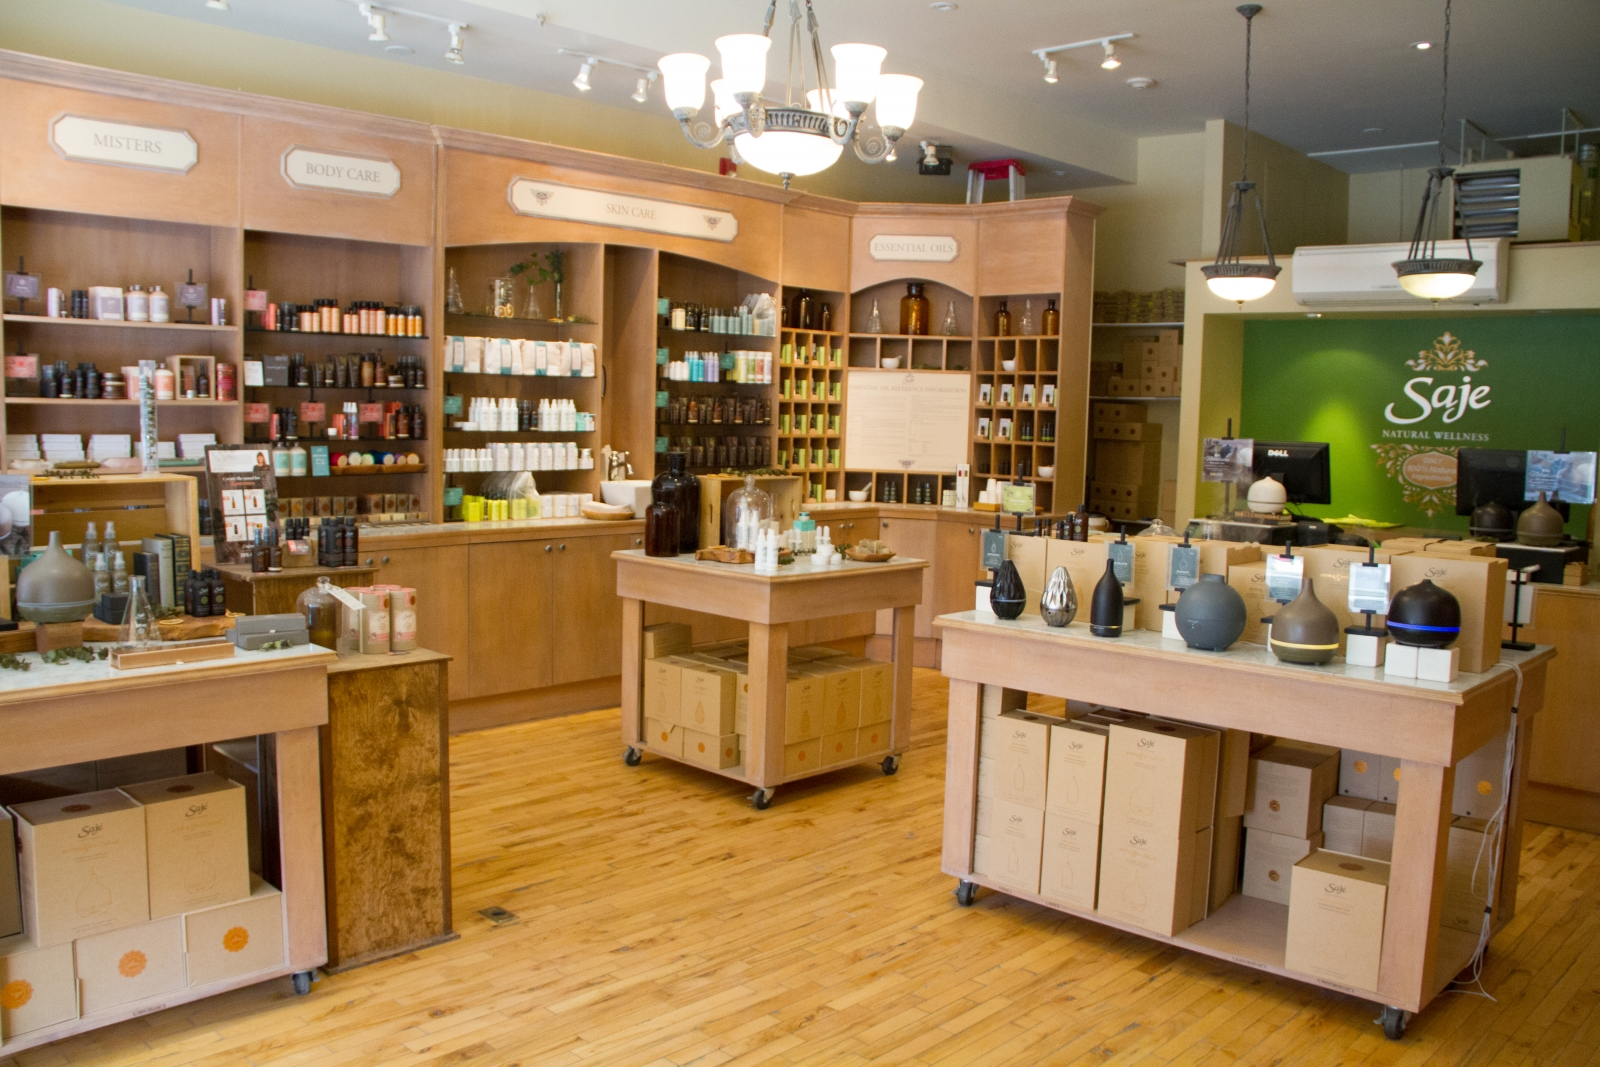 The decor at Saje's Mission location is calming and natural, a perfect backdrop for the extensive selection of 100-per cent natural products.